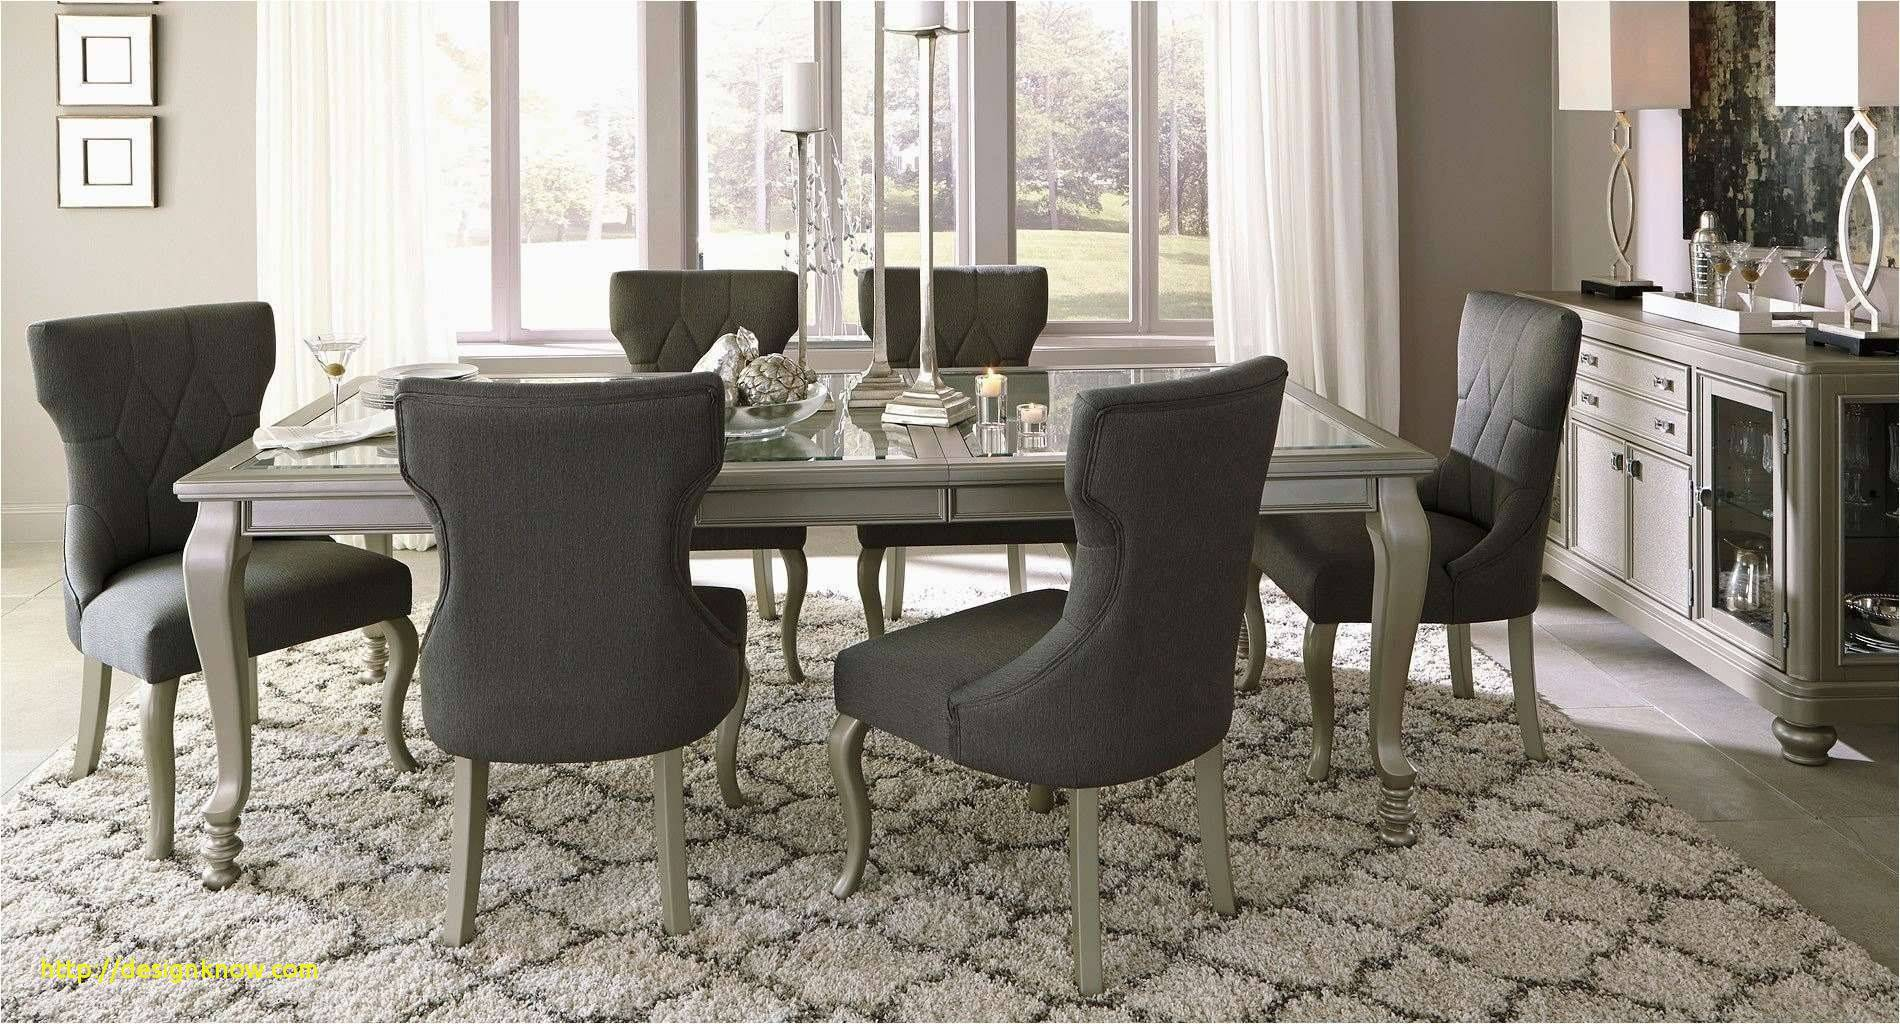 modern interior design for small spaces inspirational elegant small dining room tables home design and interior design of modern interior design for small spaces